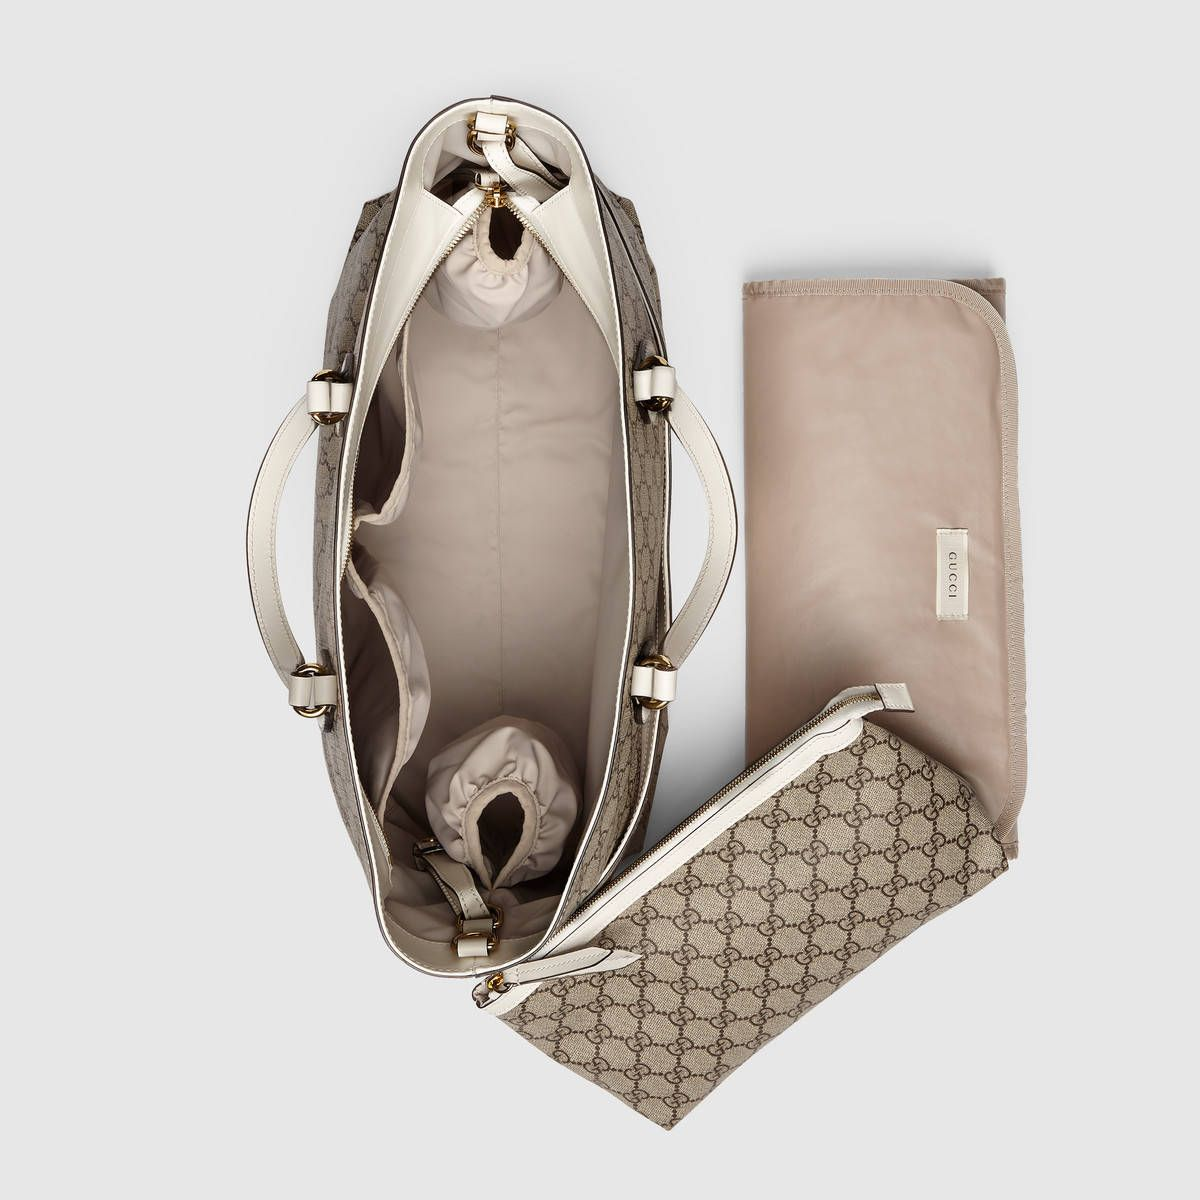 7a122988638e Gucci Soft GG Supreme diaper bag Detail 3 | MOMMY & BABY BAGS ...